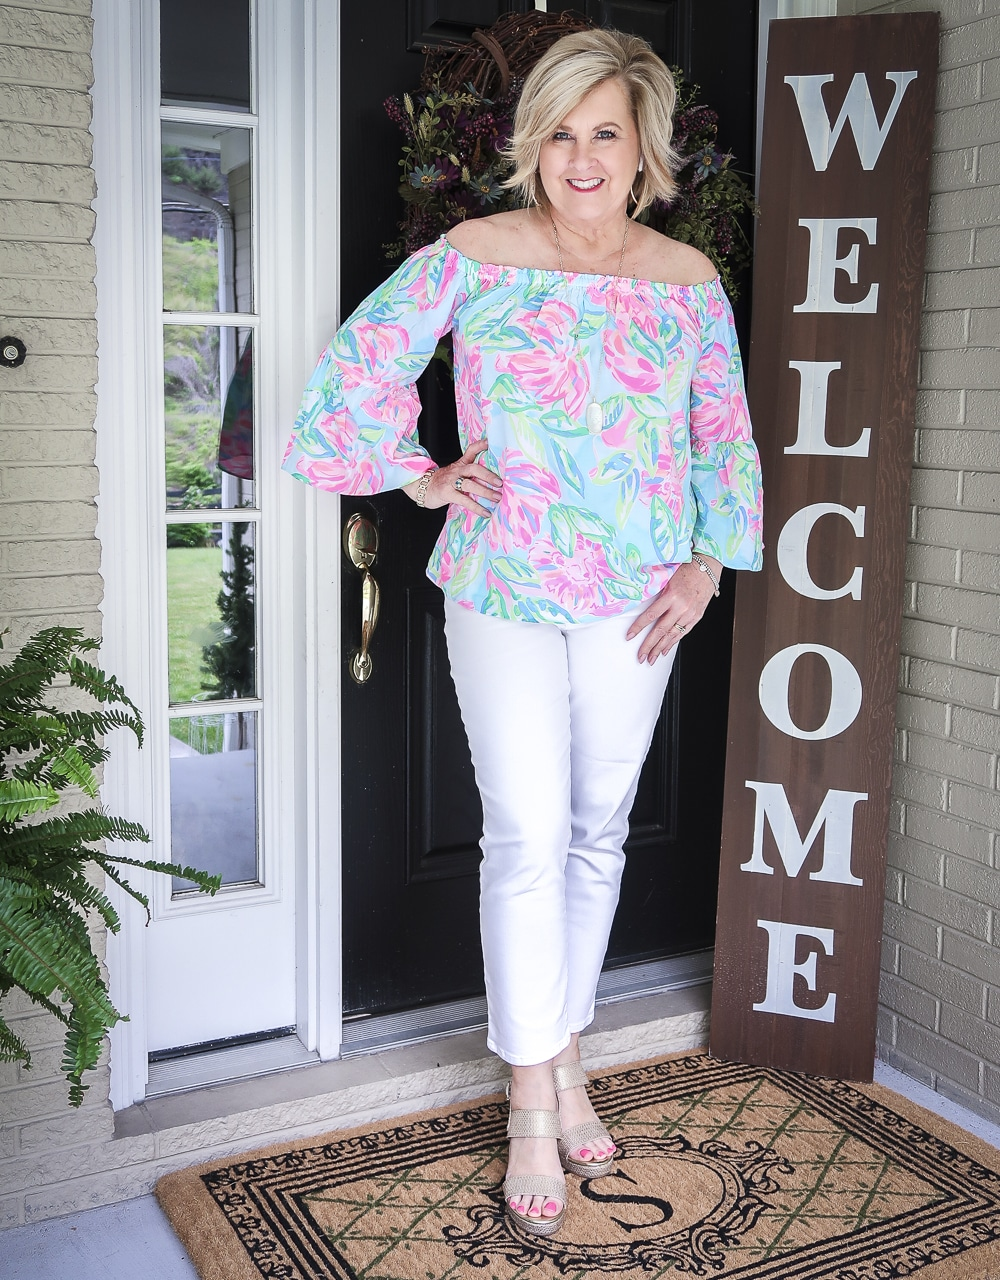 Fashion Blogger 50 Is Not Old wearing a colorful top from Lilly Pulitzer and white crop jeans with gold espadrilles